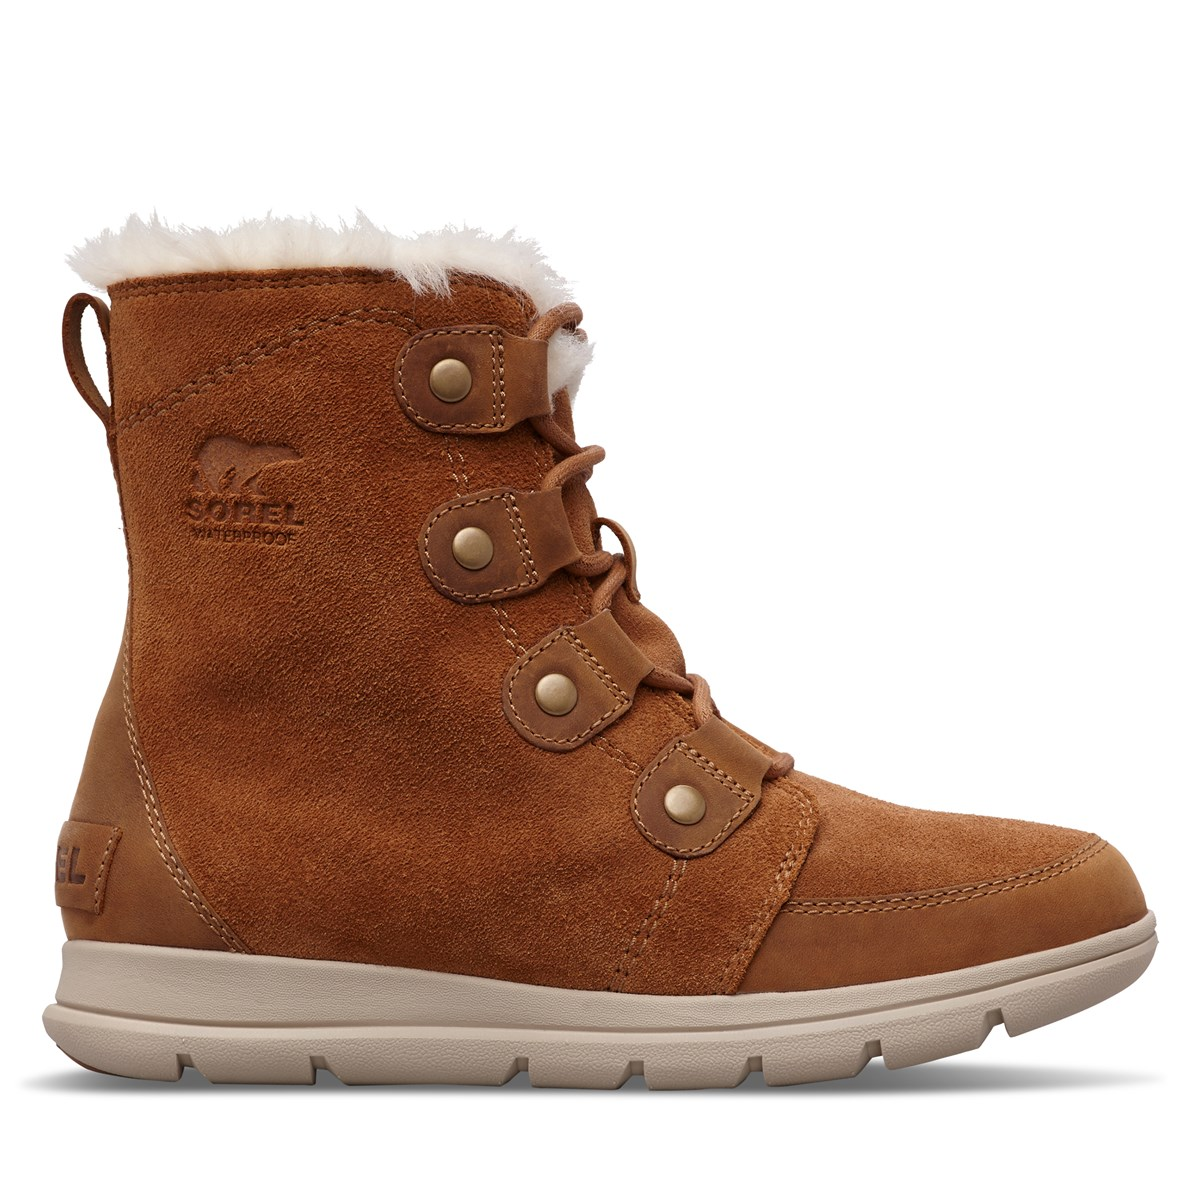 Women's Explorer Joan Boots in Camel Brown